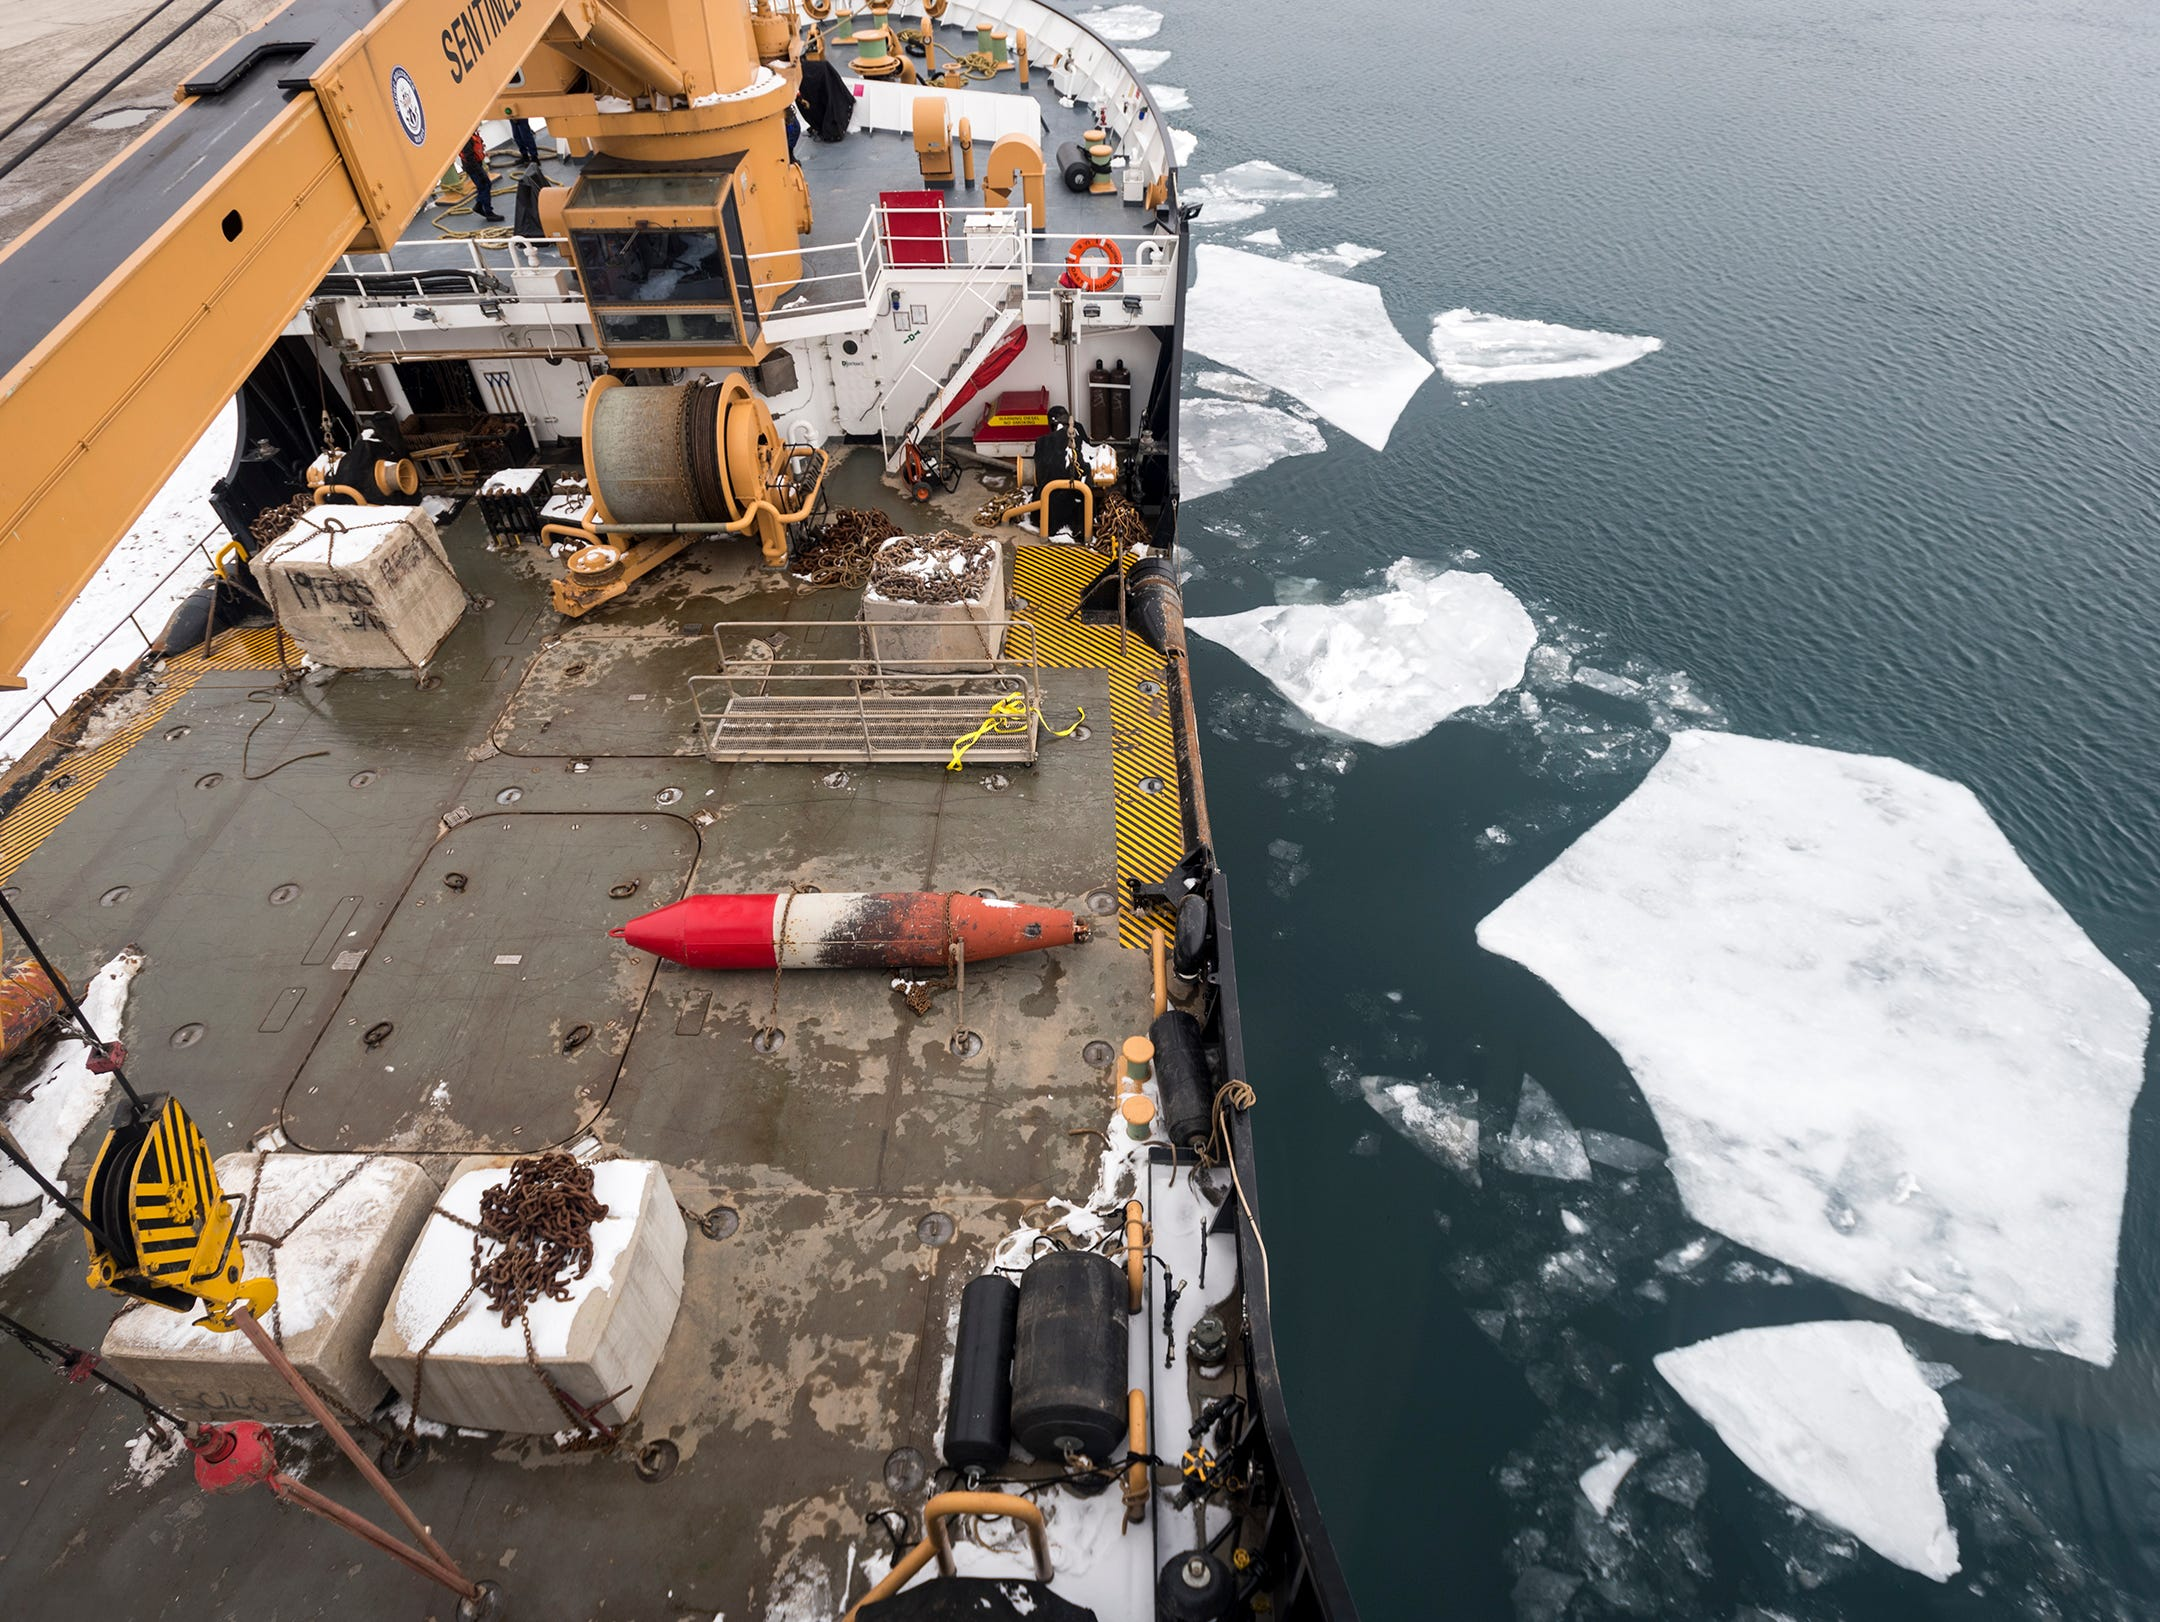 Chunks of ice float past the deck of the USCGC Hollyhock Wednesday morning, Feb. 20, 2019, before the ship is underway on the St. Clair River from the Cargill Salt plant in St. Clair. The day's mission is to head south on the river to meet up with the USCGC Bristol Bay to escort the Algonova, a nearly 430-foot freighter north, through an ice jam that had formed near Algonac.